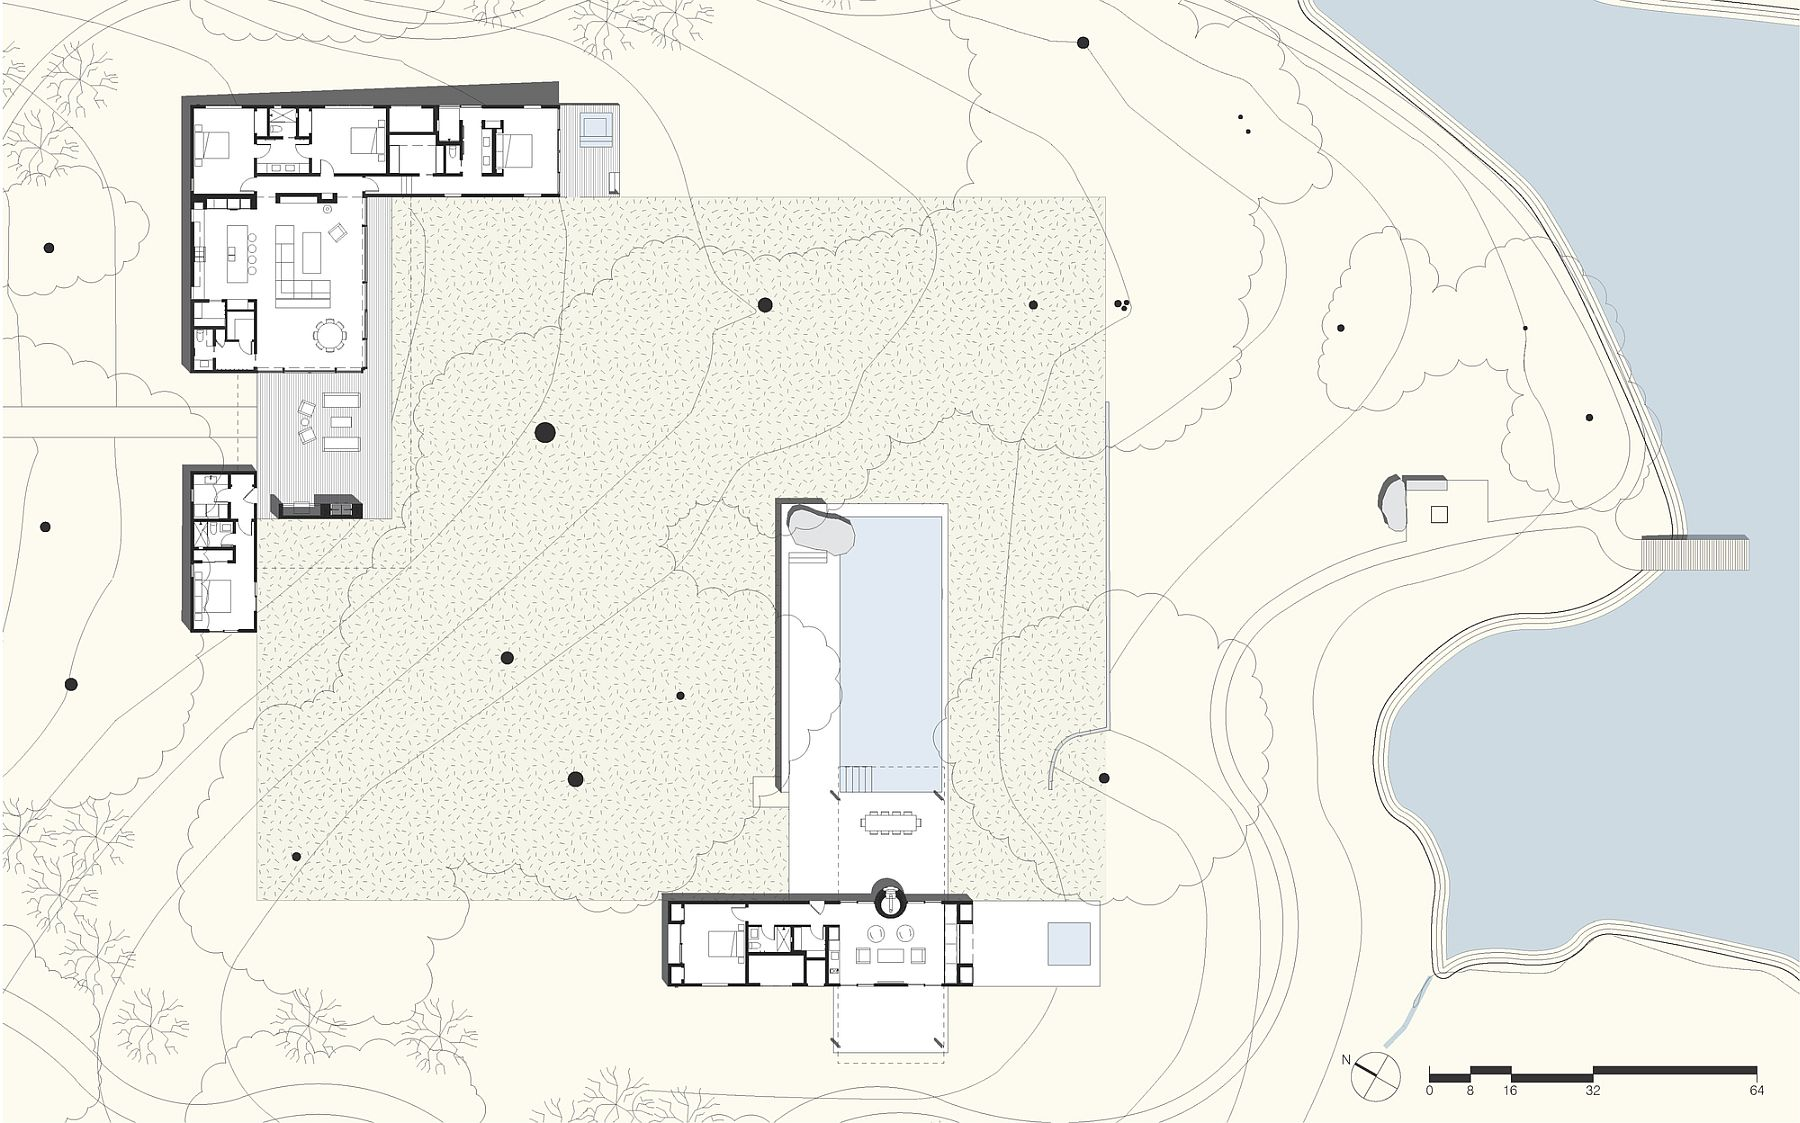 Floor plan of the fabulous and serene Sonoma Residence with natural pond